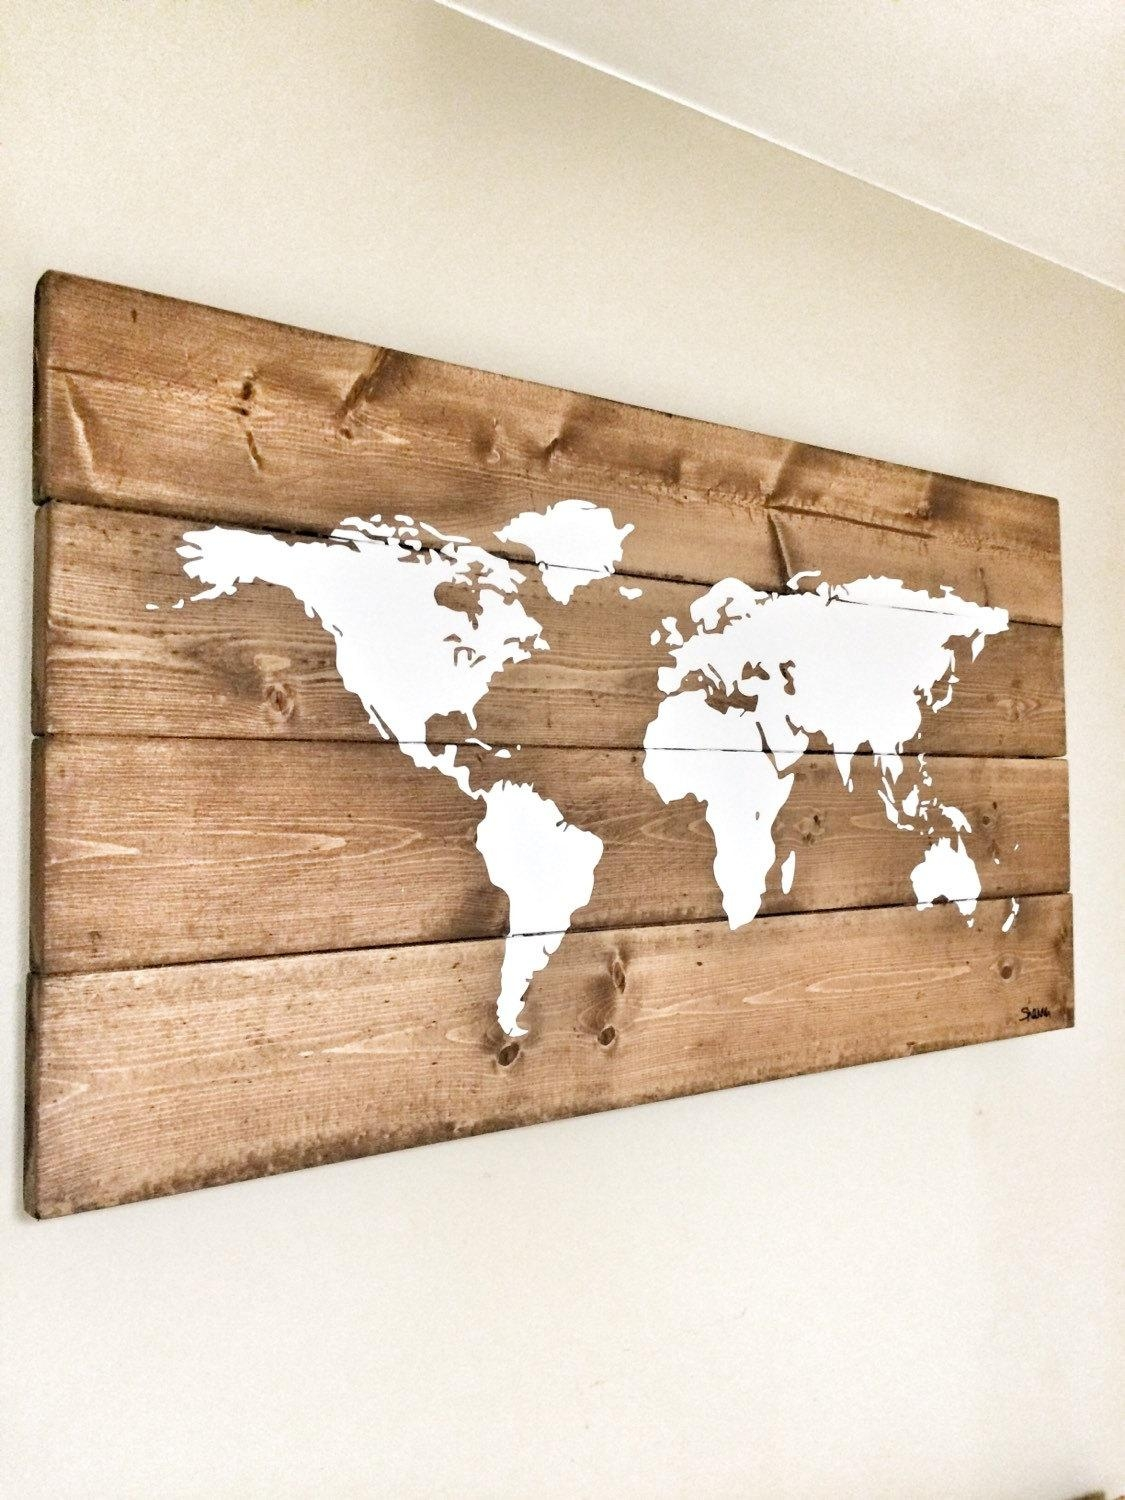 Wall Art Designs: Wooden World Map Wall Art Wooden Wall Art Rustic With Regard To Wooden World Map Wall Art (Image 11 of 20)